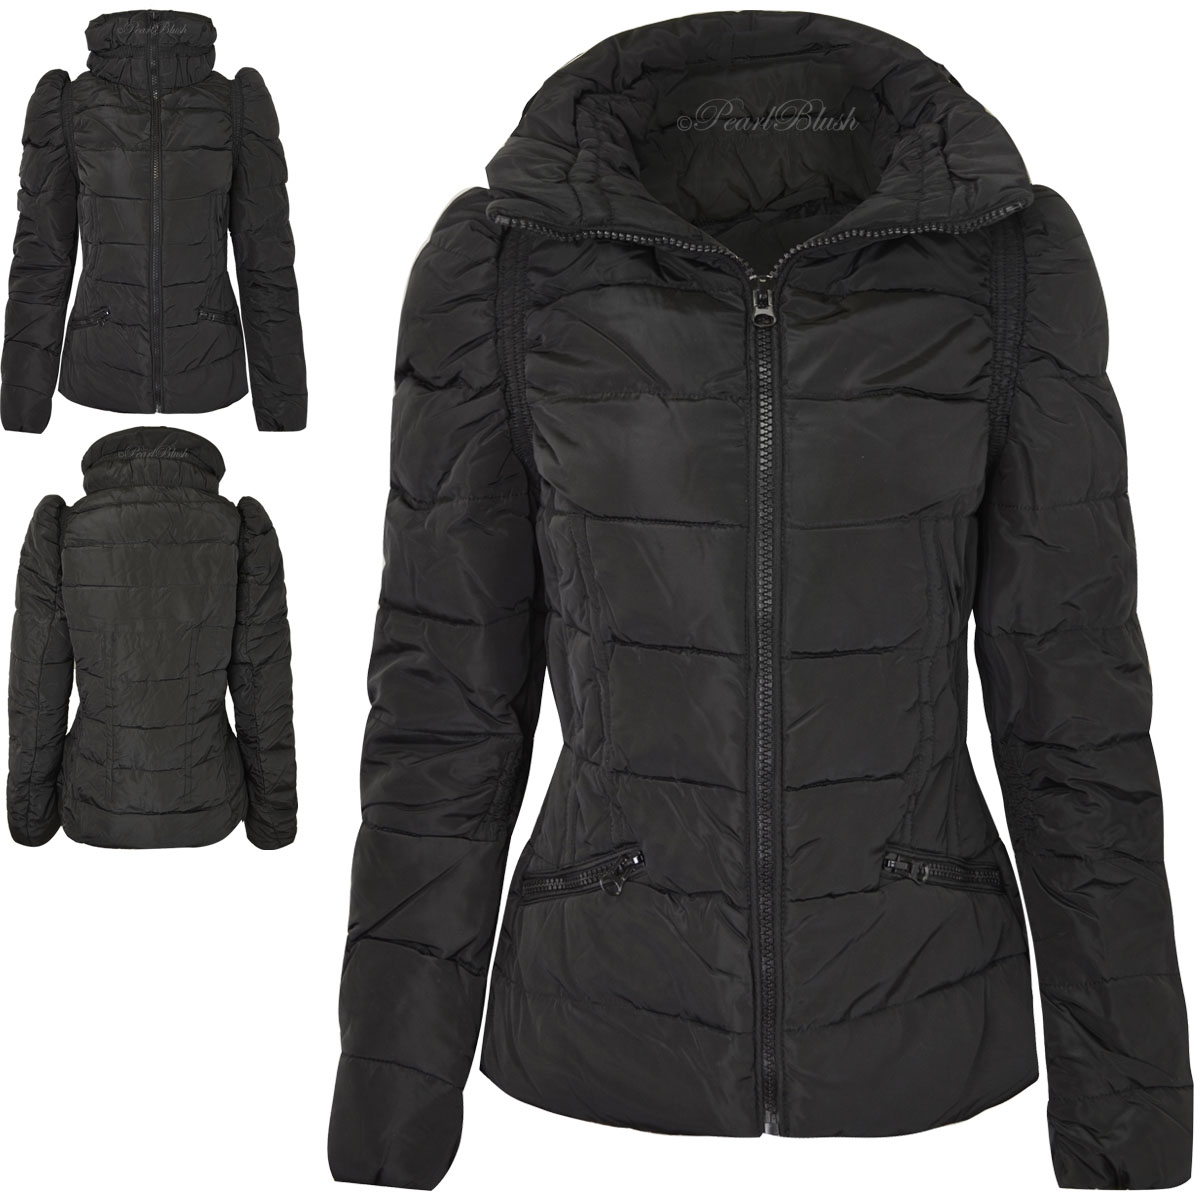 From lightweight Women's jackets for crisp fall days to ultra-warm full-length coverage for the harshest winter days, we make it easy to find the perfect Women's coat. Our extensive selection of Women's winter coats and Women's winter jackets includes styles for around town, to and from work and for every type of outdoor activity.